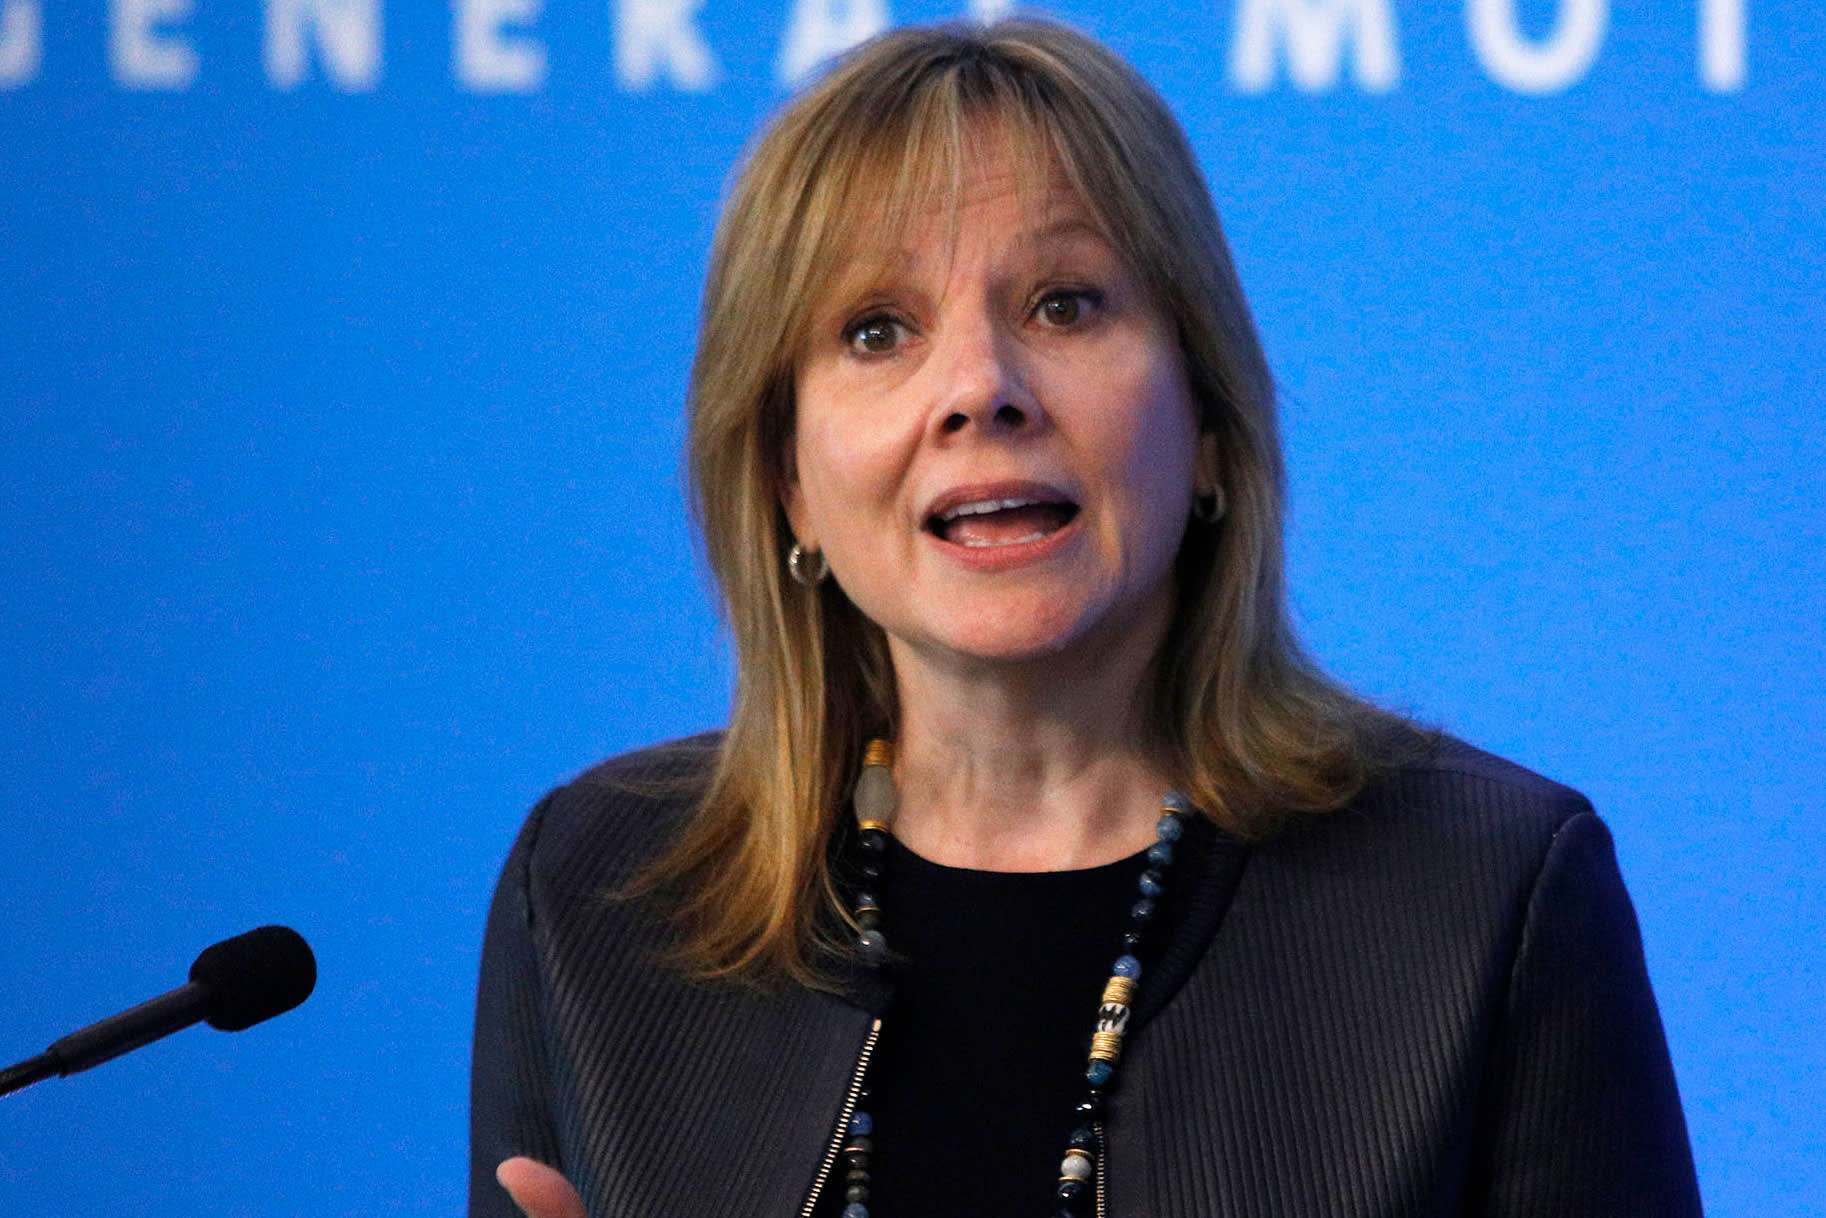 GM's CEO deflects questions about Tesla's Cybertruck, but sees electric pickups as significant